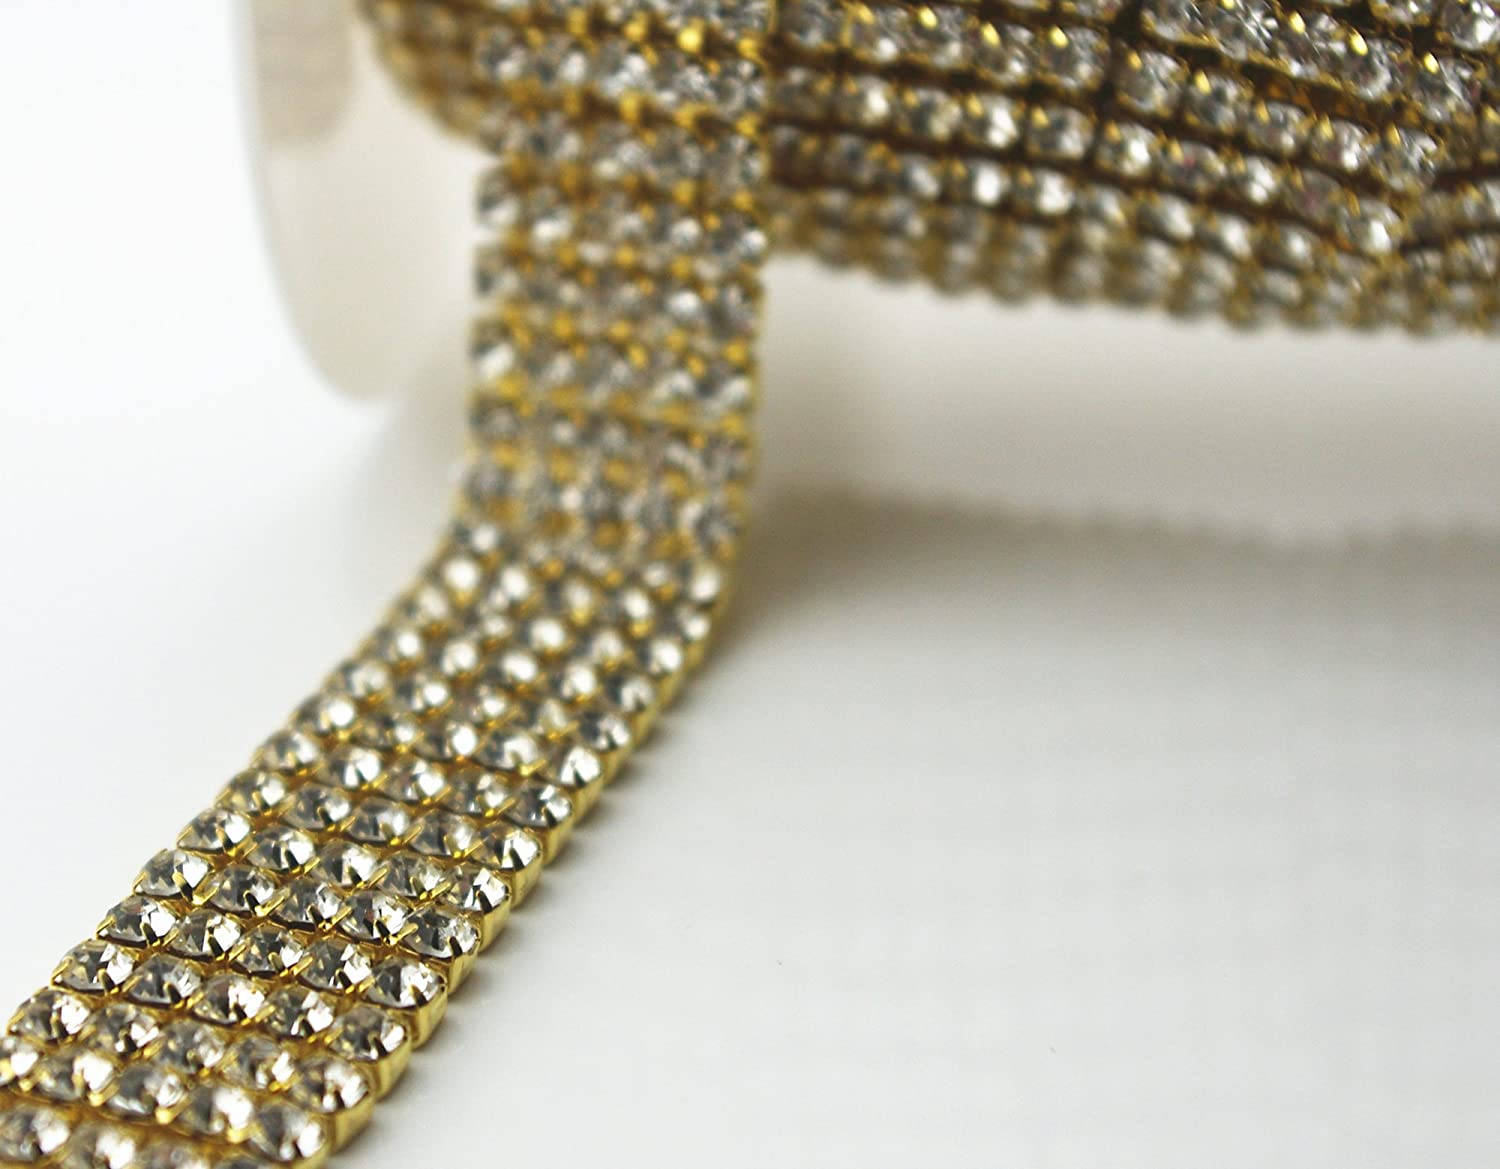 3 FEET 1 Yard 5 Rows SS16 2/3 inches Clear Crystal Close Gold Plated Rhinestone Chain Trims Cup Chain Wedding Cake Decoration